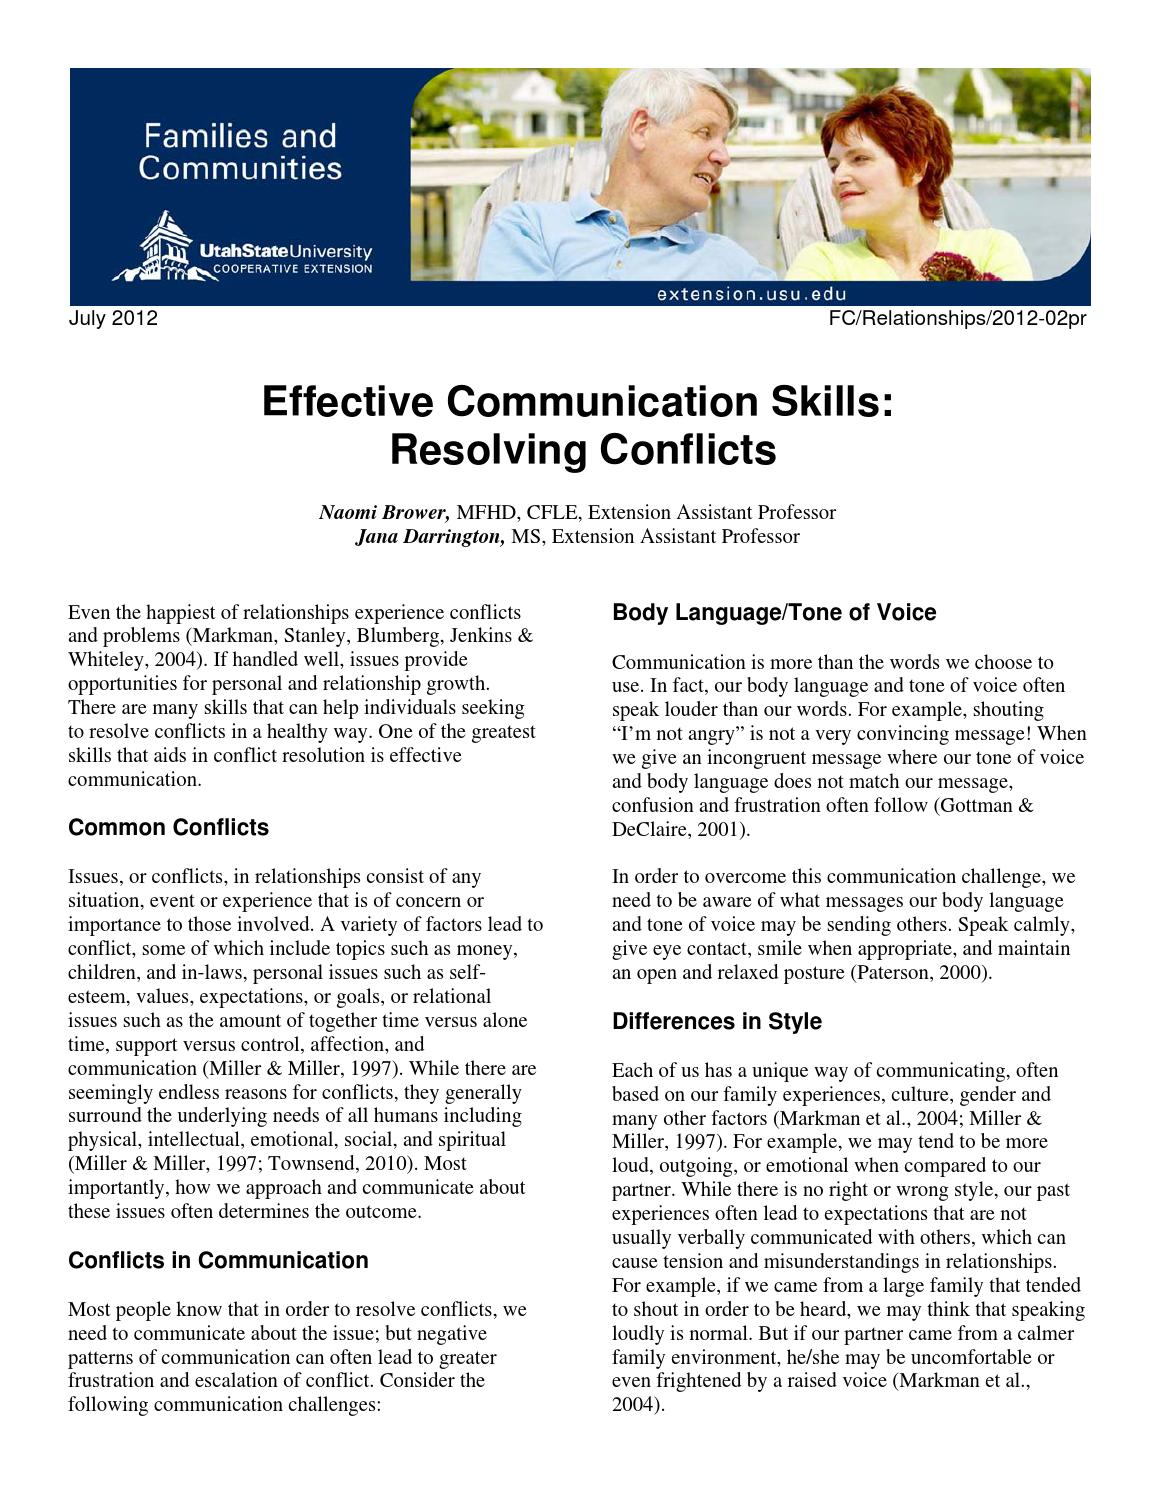 Effective Communication Skills: Resolving Conflicts by Utah State